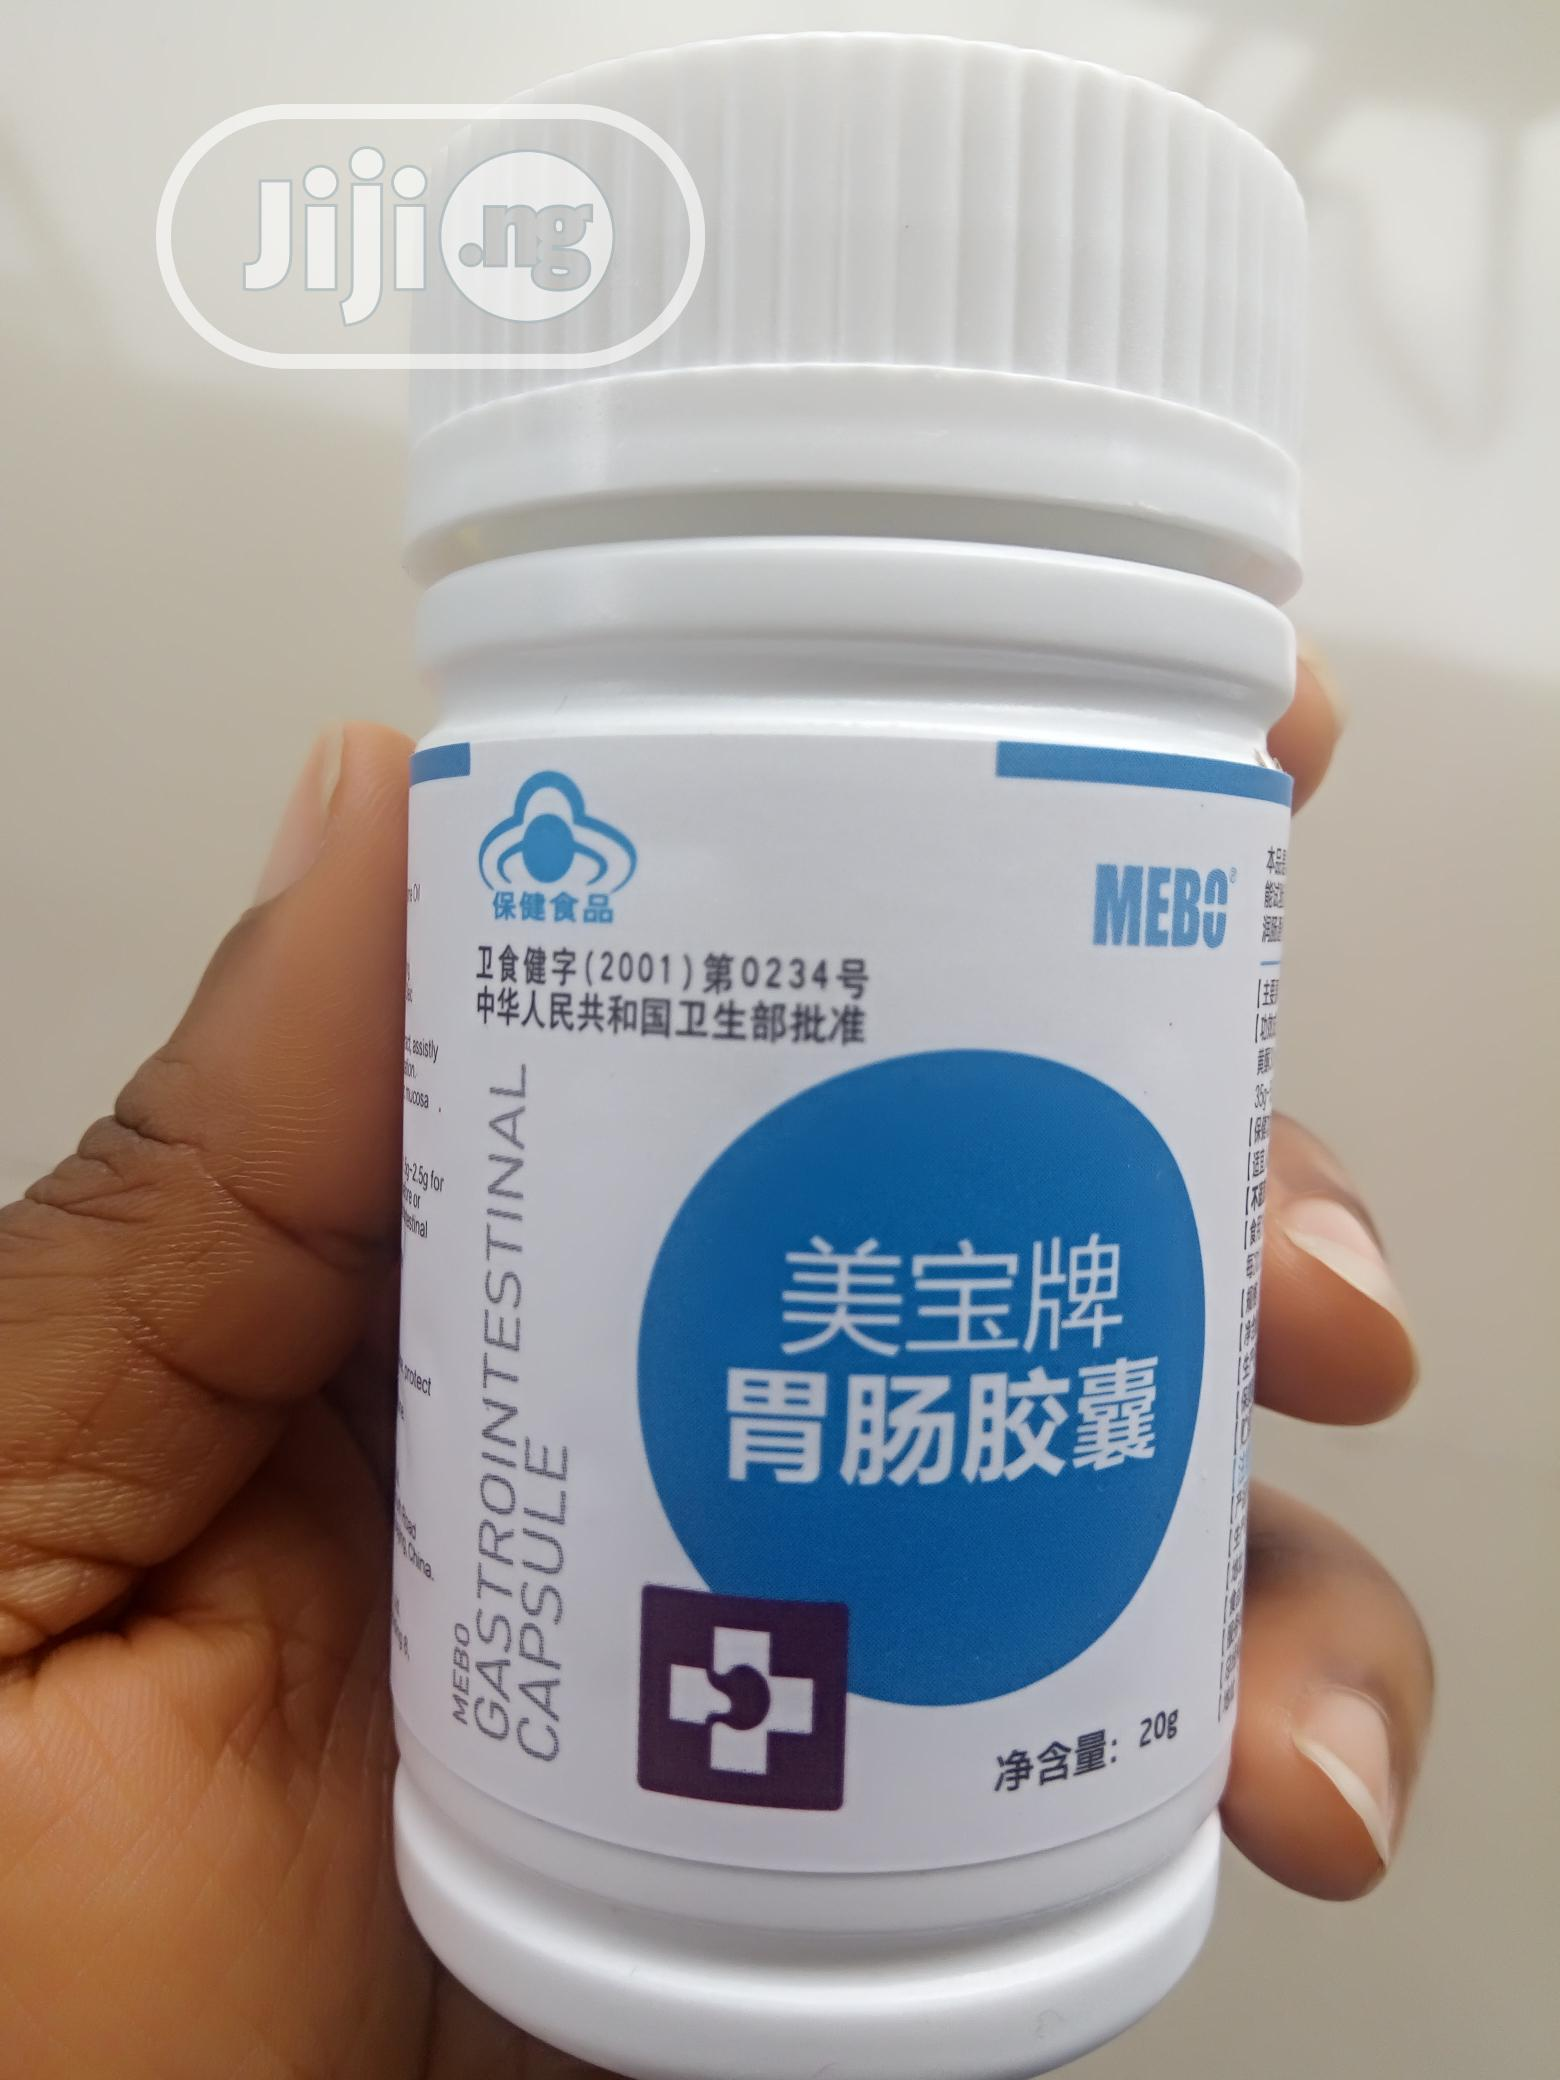 Amazing Discovery Permanent Cure For Ulcer Mebo GI Gastrointestinal | Vitamins & Supplements for sale in Karu, Abuja (FCT) State, Nigeria